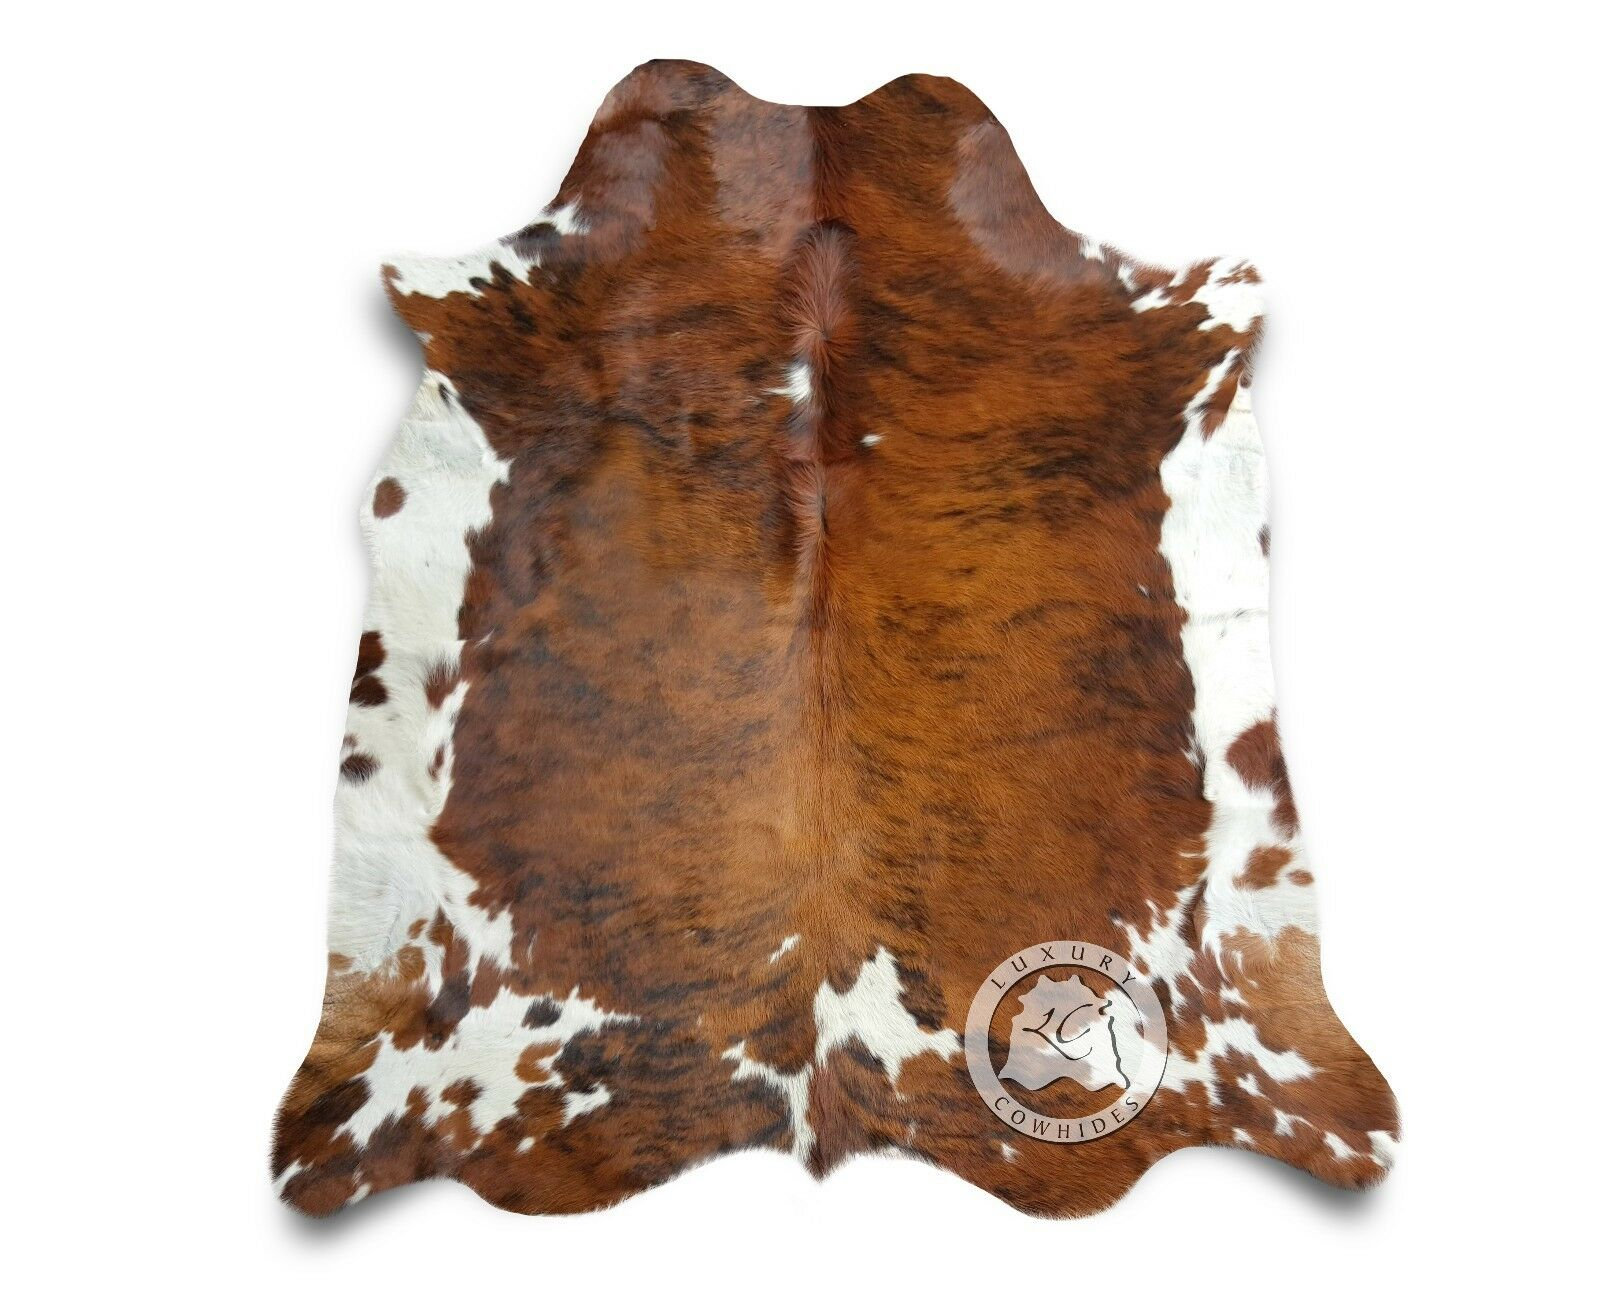 New Cowhide Rug Leather TRIFarbe COLOMBIAN 6'x8' Cow Hide Upholstery Leather